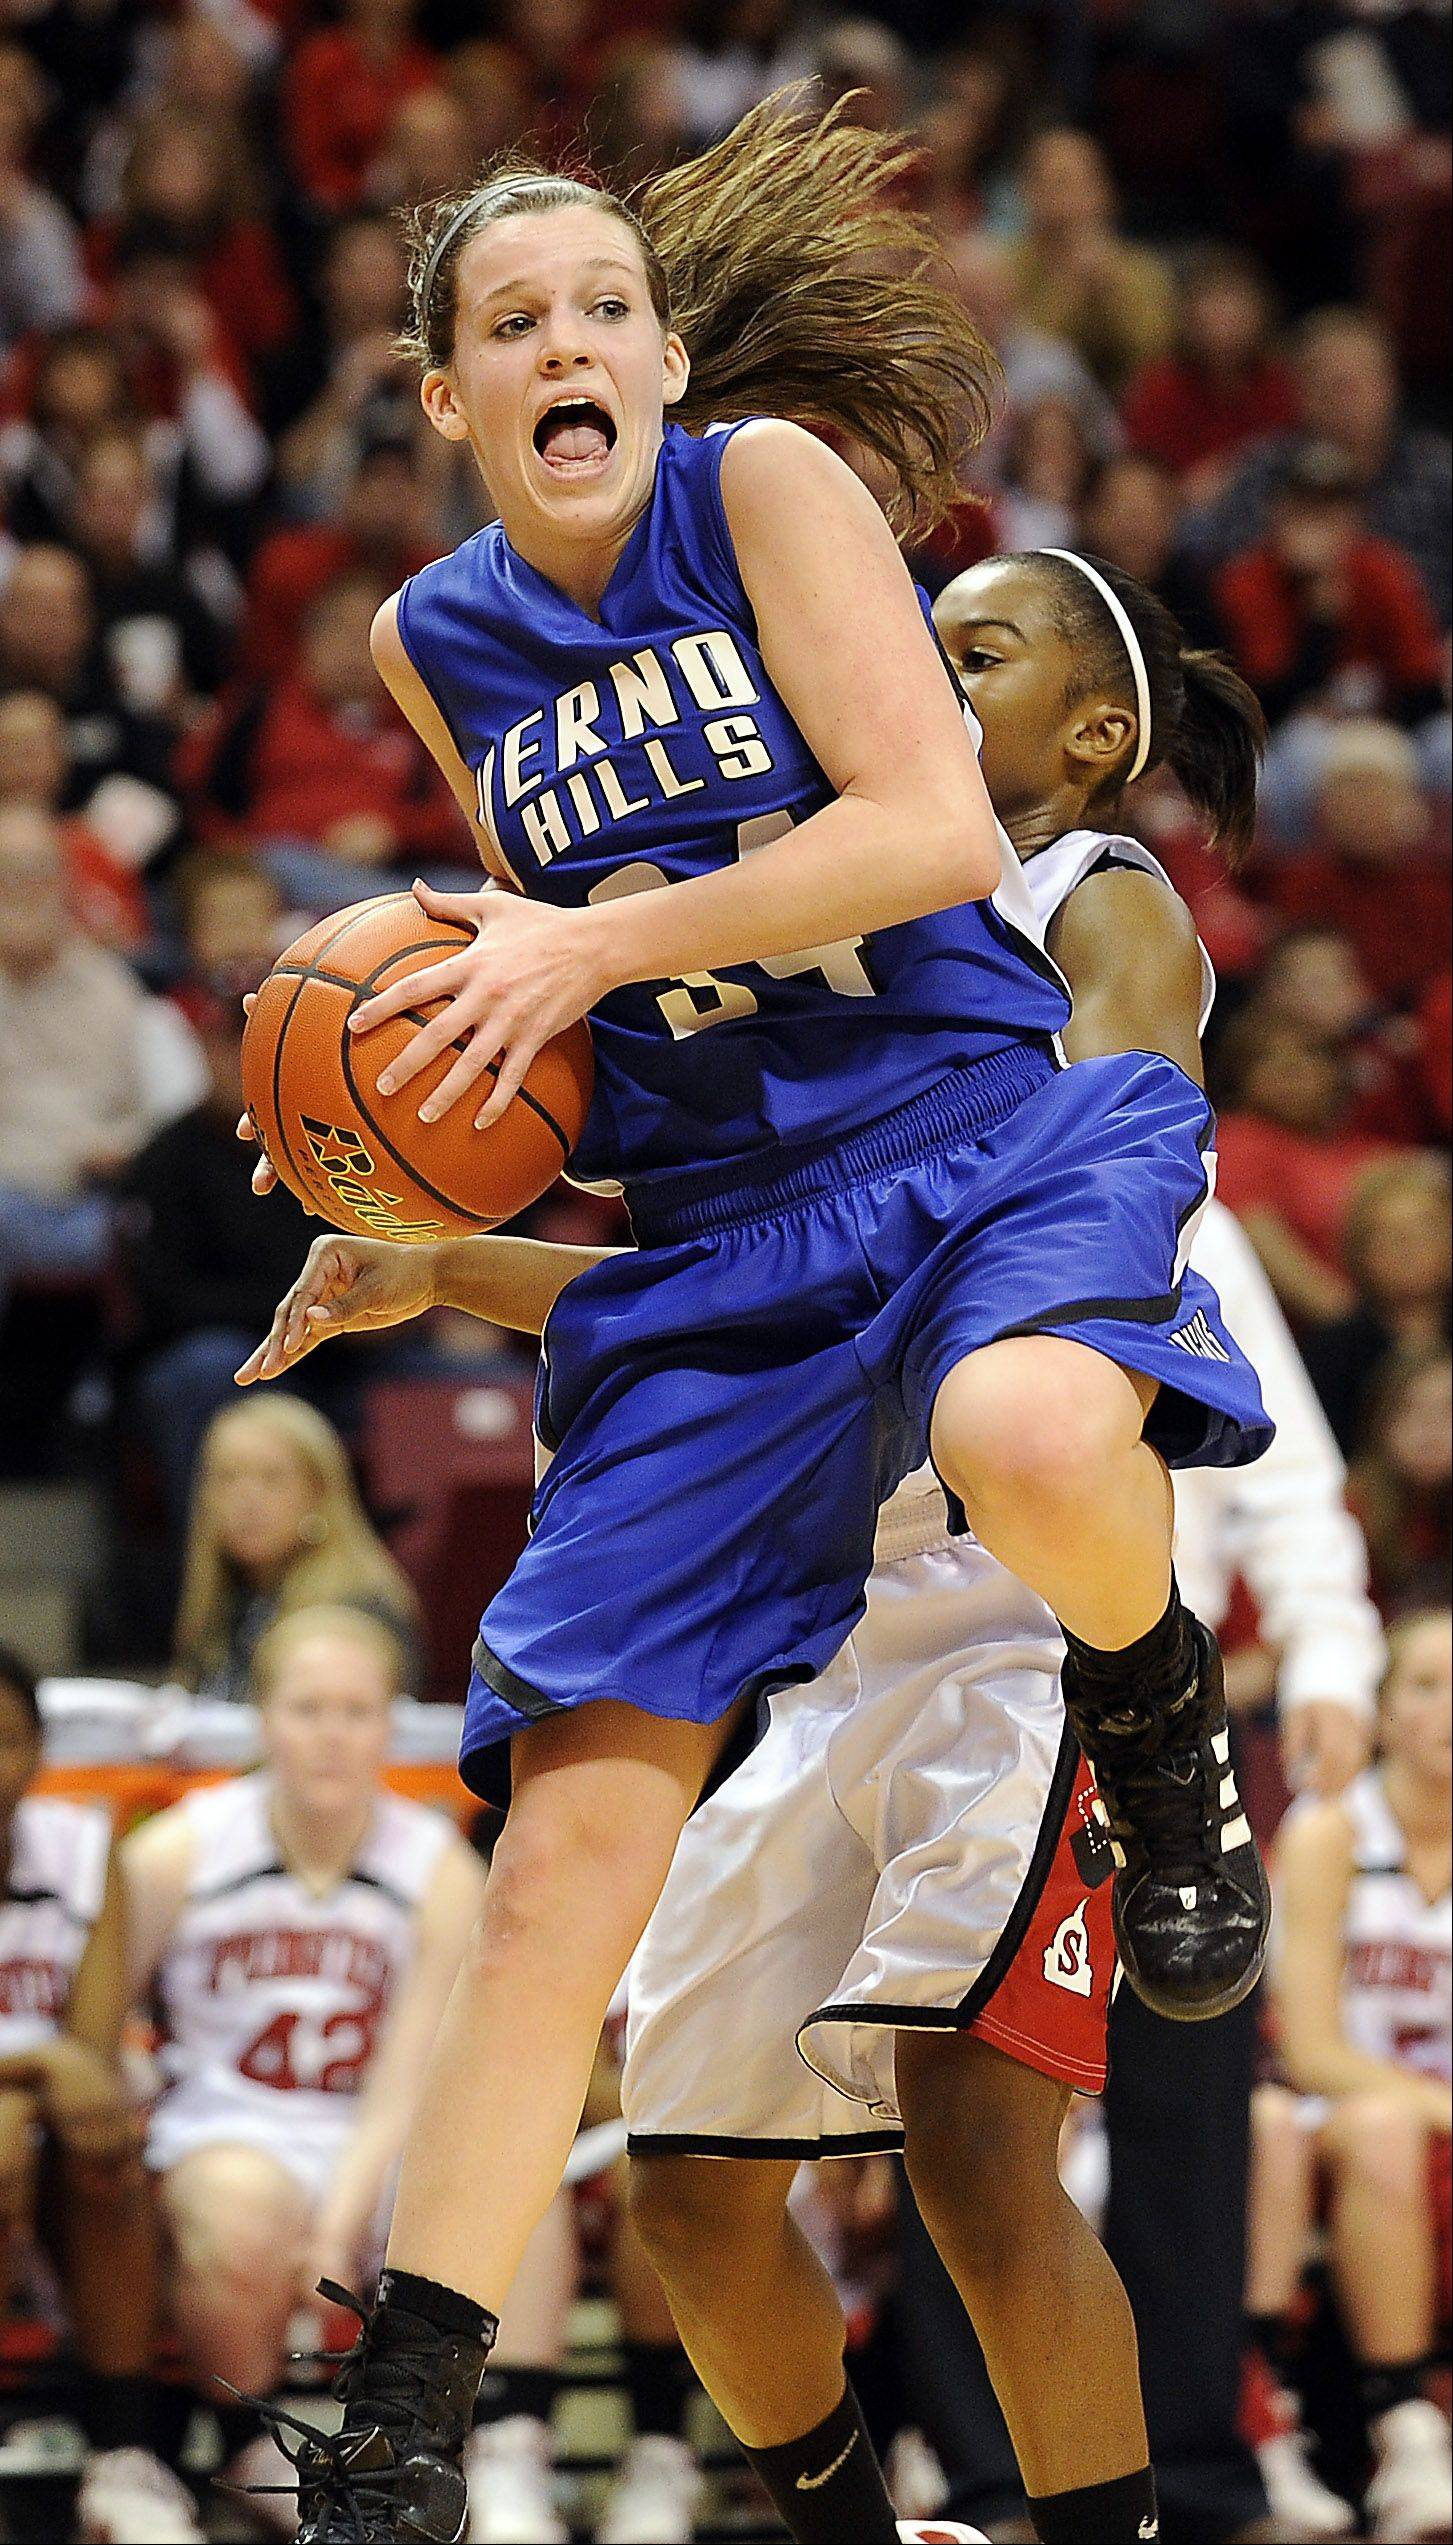 Mark Welsh/mwelsh@dailyherald.comVernon Hills' Abby Springer pulls down a rebound in the second quarter in the 2012 IHSA Class 3A girls basketball tournament in Normal, Illinois on Friday.